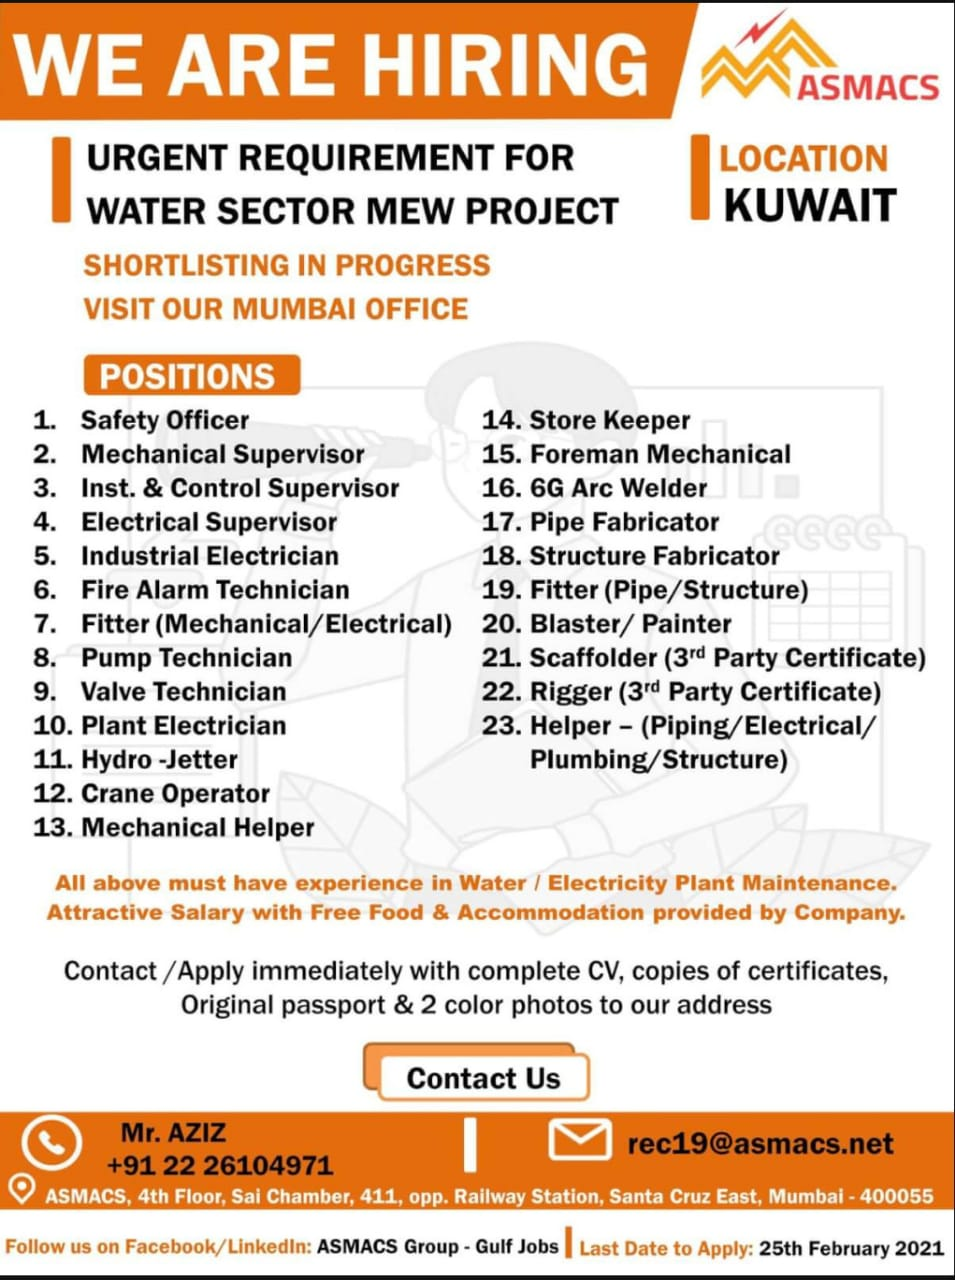 URGENT REQUIREMENT FOR  WATER SECTOR MEW PROJECT-KUWAIT